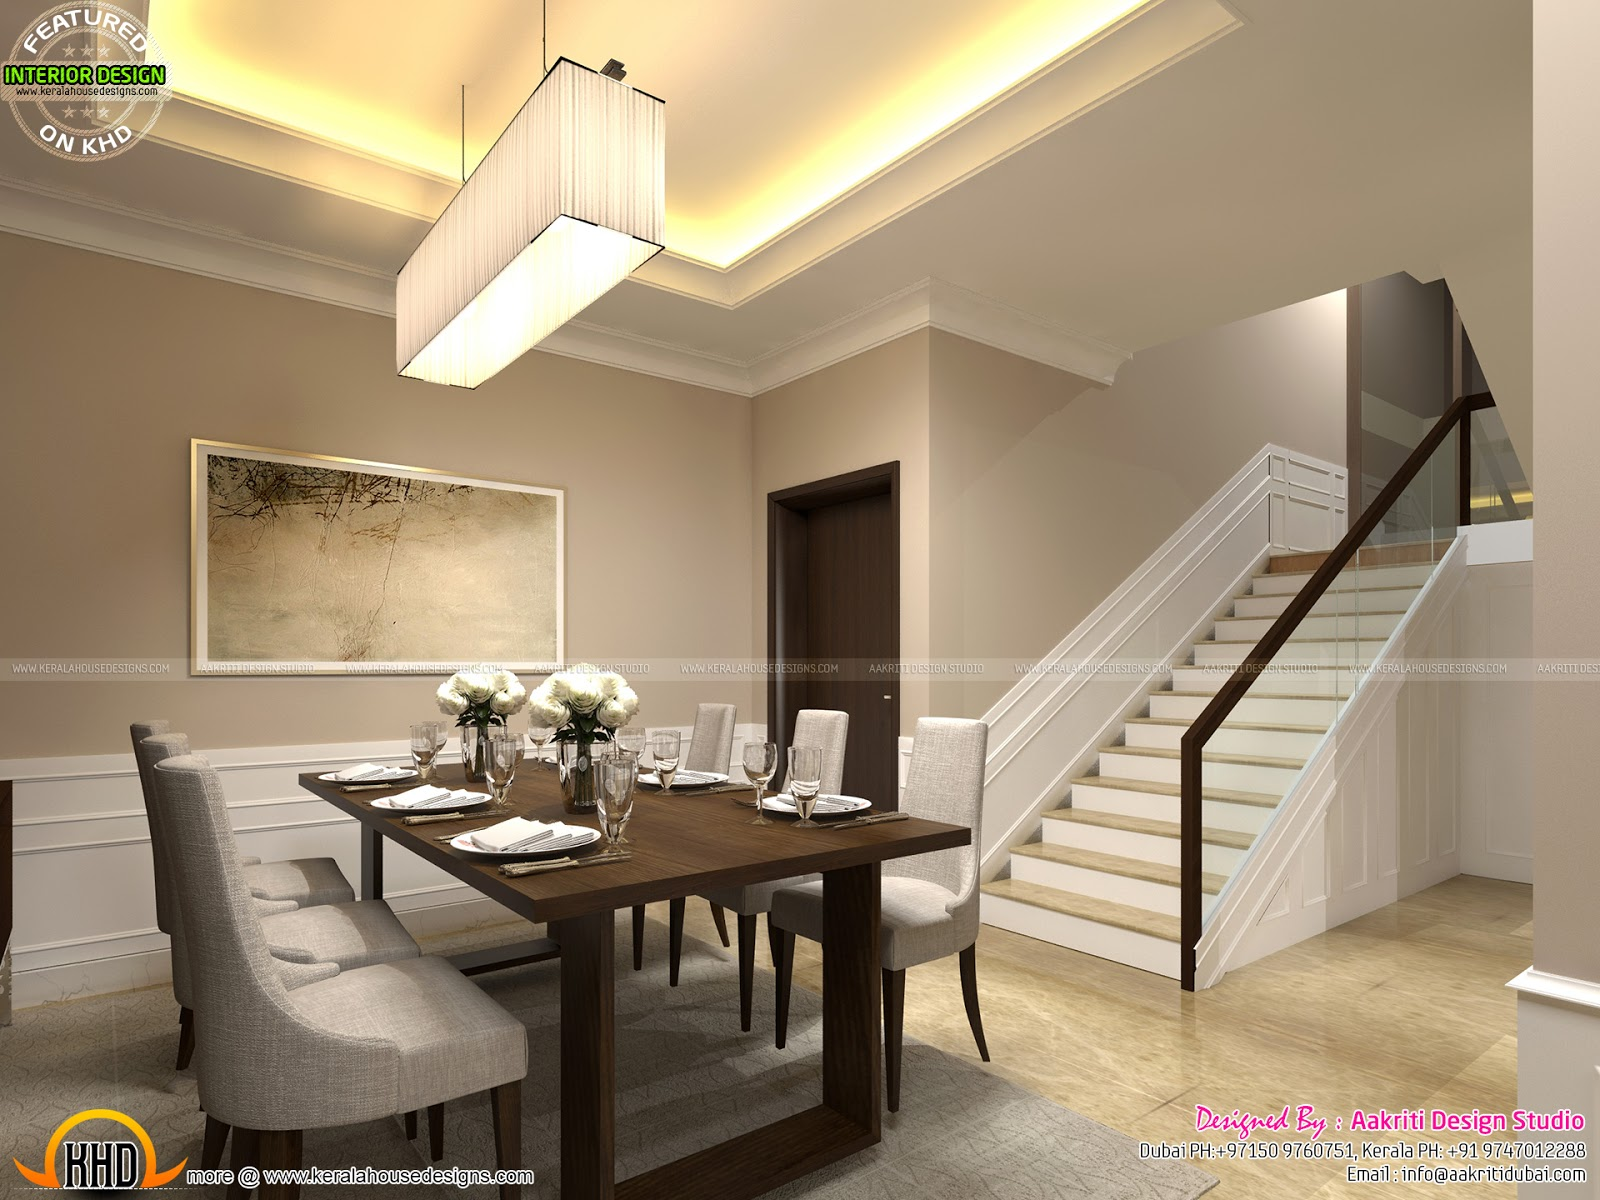 Classic style interior design for living room stair area for Interior design for dining area